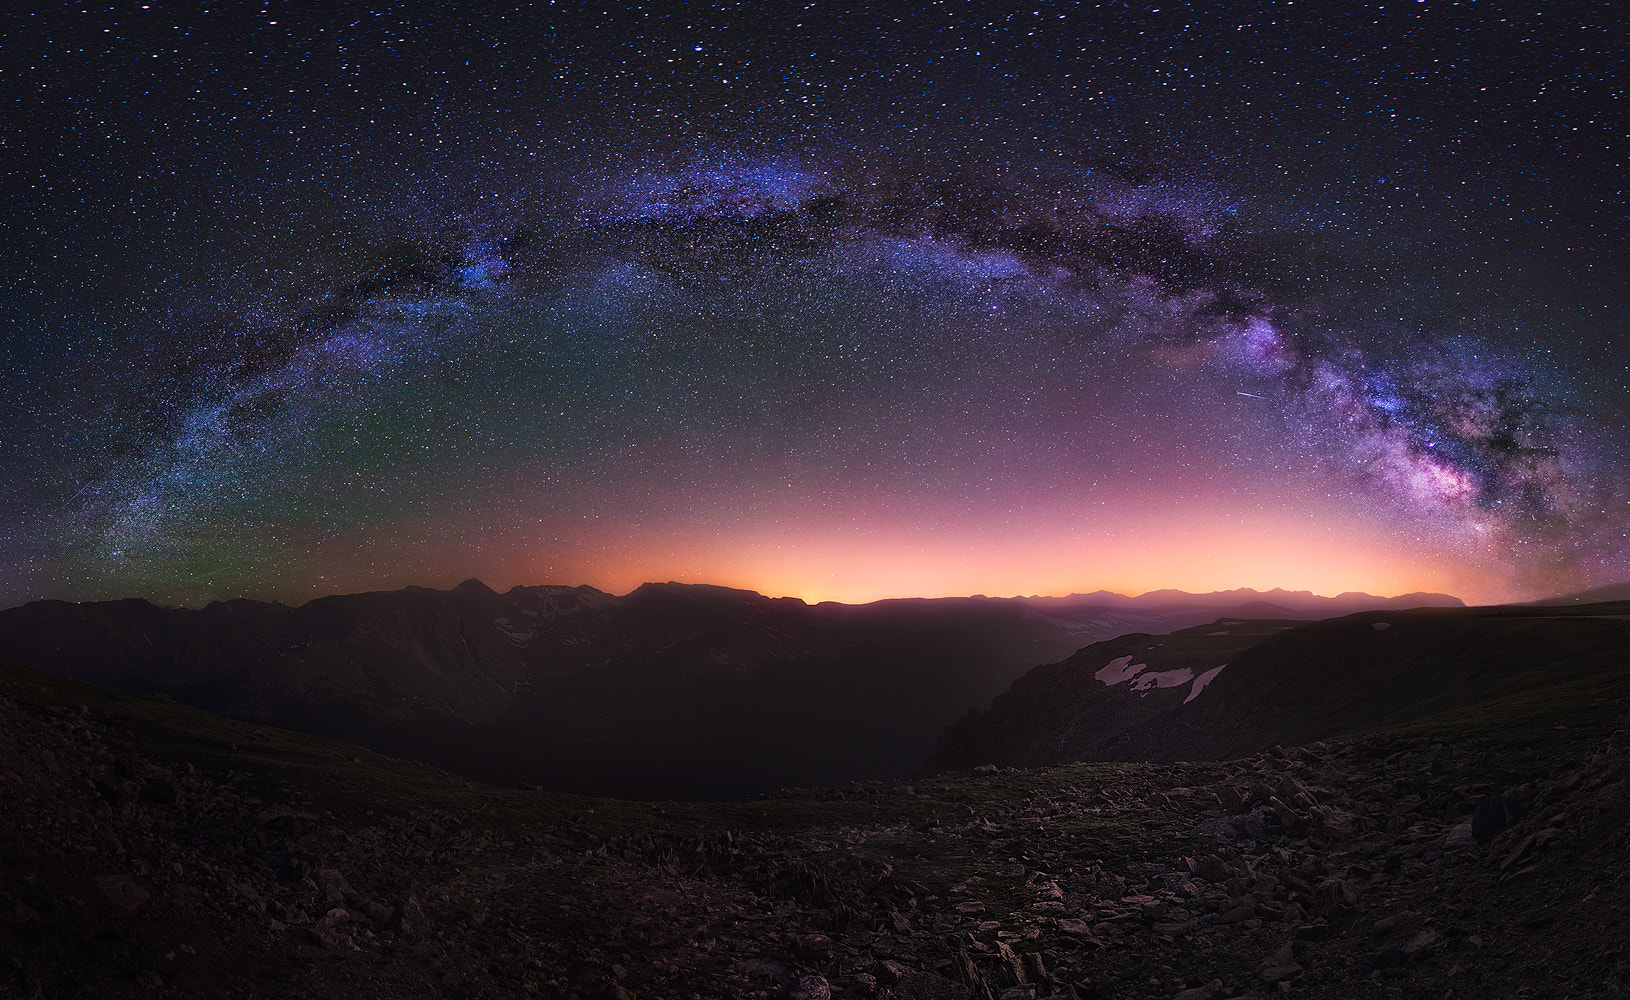 Photograph Milky Way over the Rockies by Jesse Summers on 500px